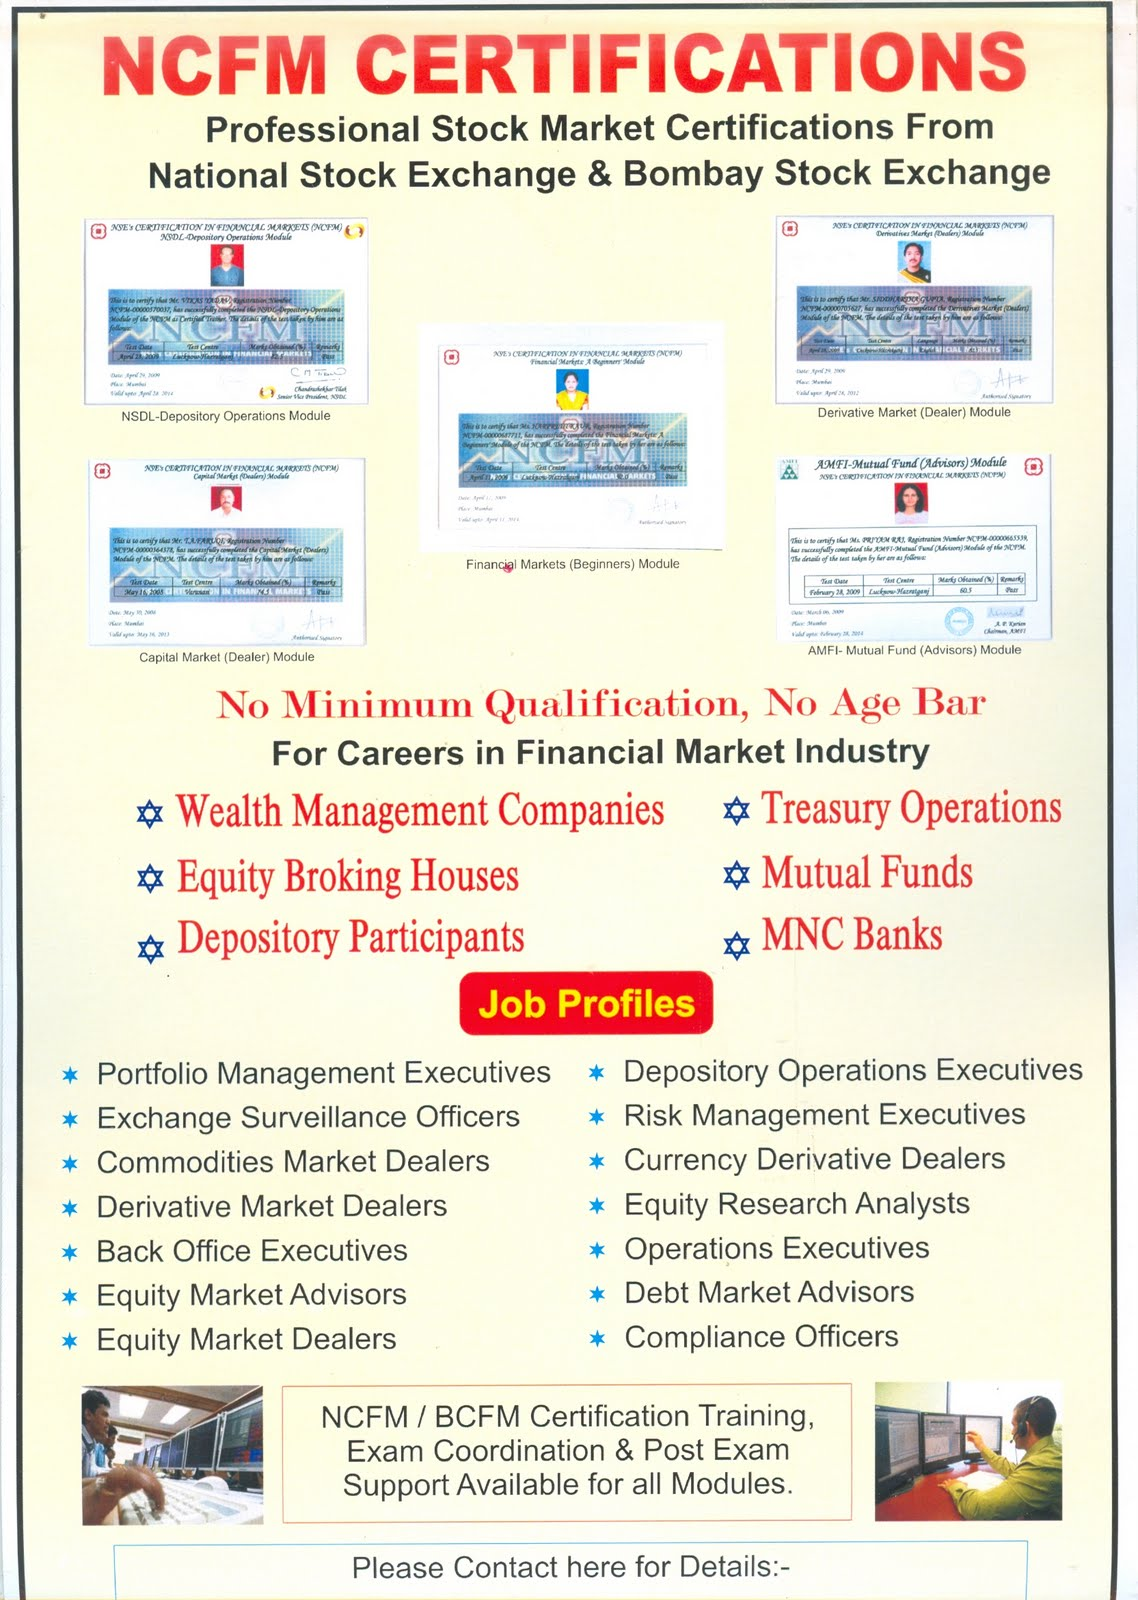 certifications from the bombay stock exchange